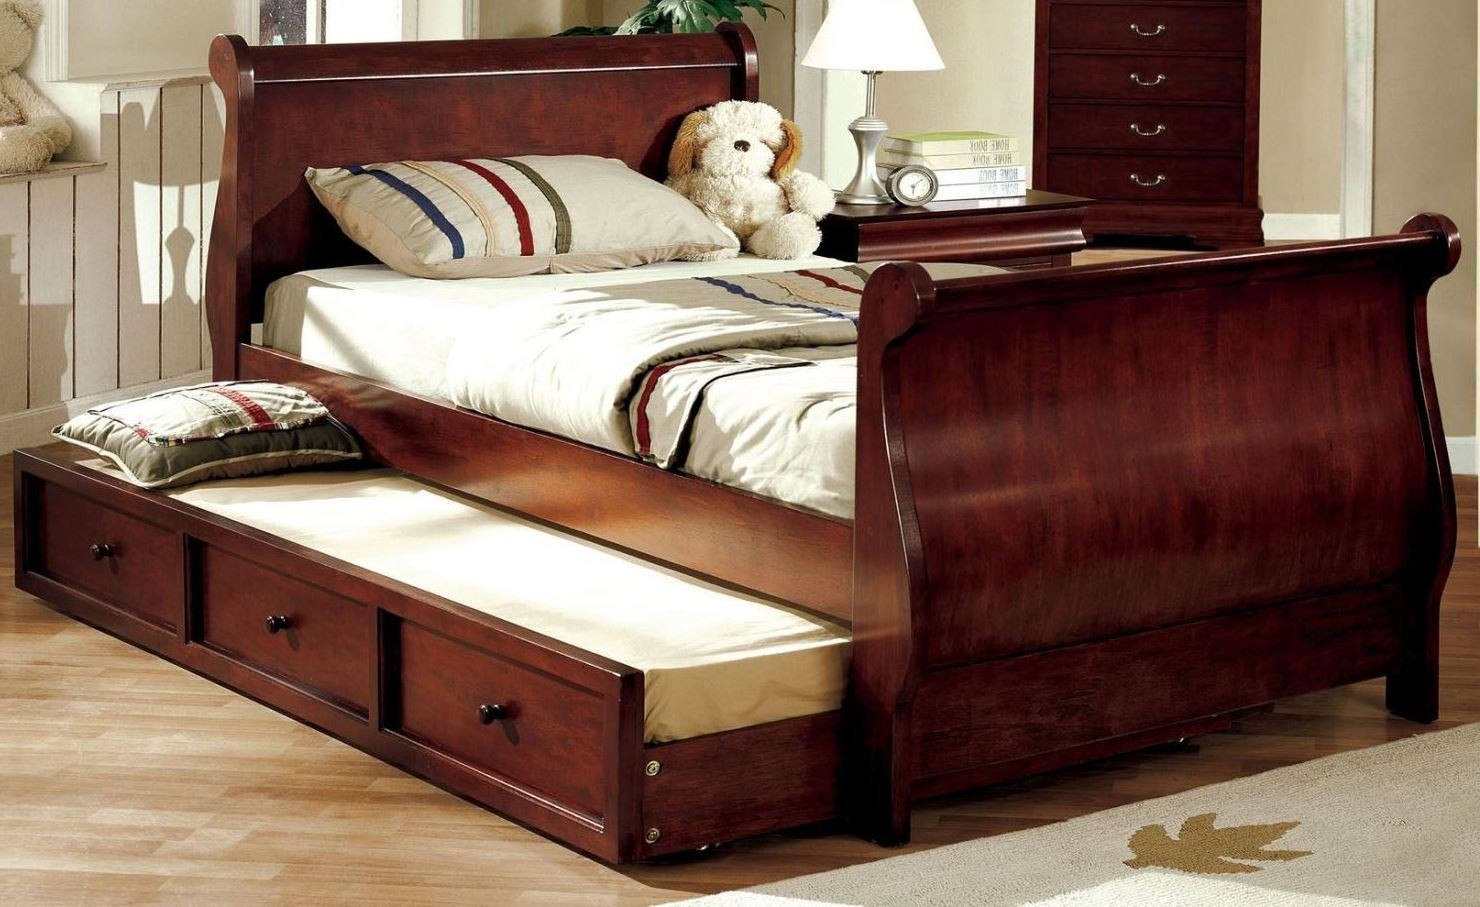 Louis Philippe Jr Dark Cherry Full Trundle Sleigh Bed From Furniture Of America Cm7828ctr Full